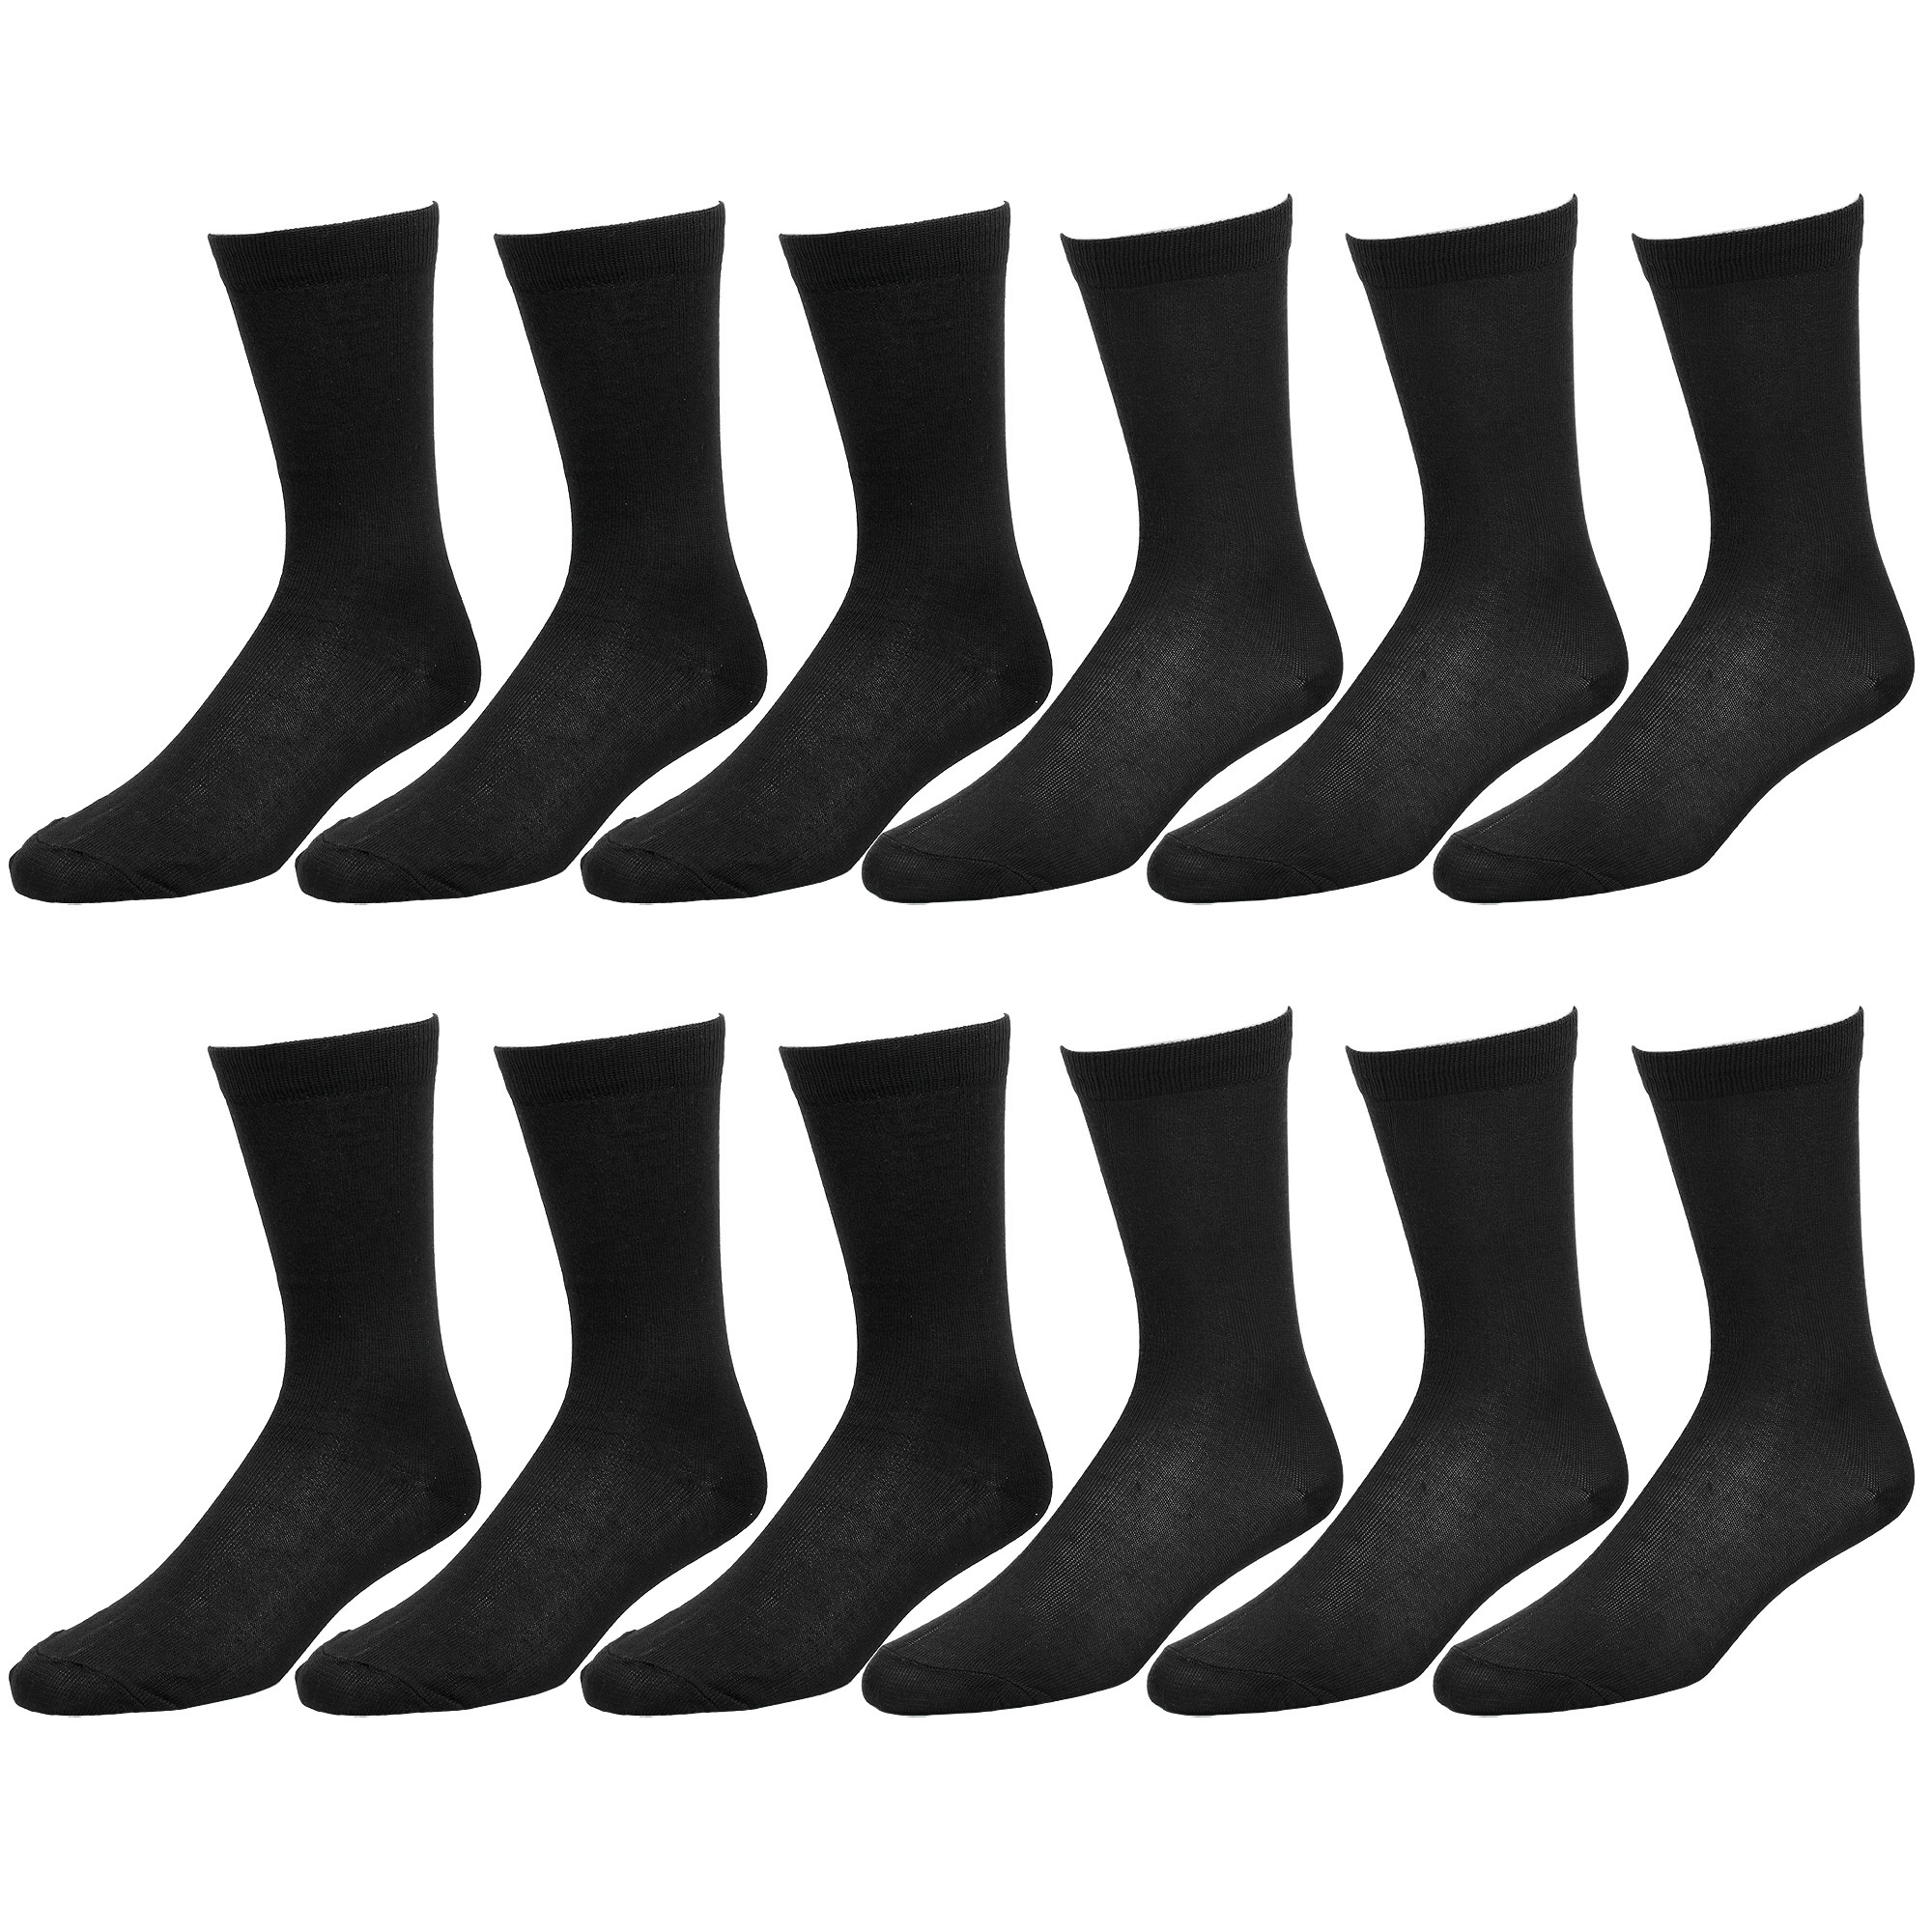 12-Pack Solid Black Color Men Dress Socks Size 10-13